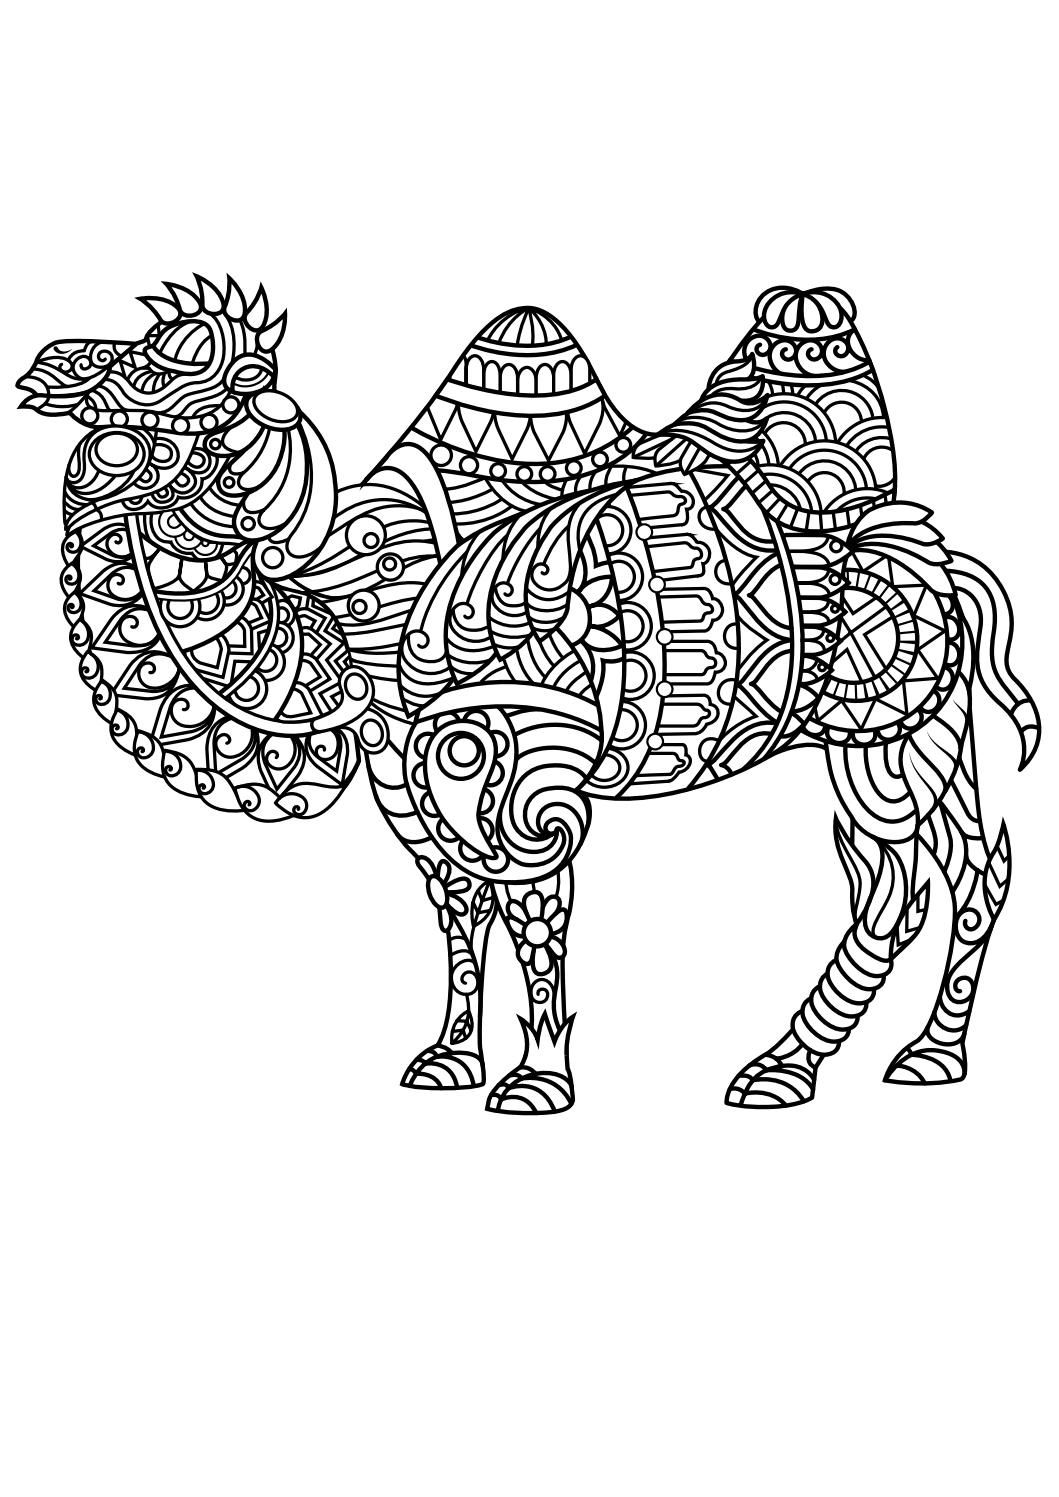 Animal coloring pages pdf Mandala coloring pages, Adult